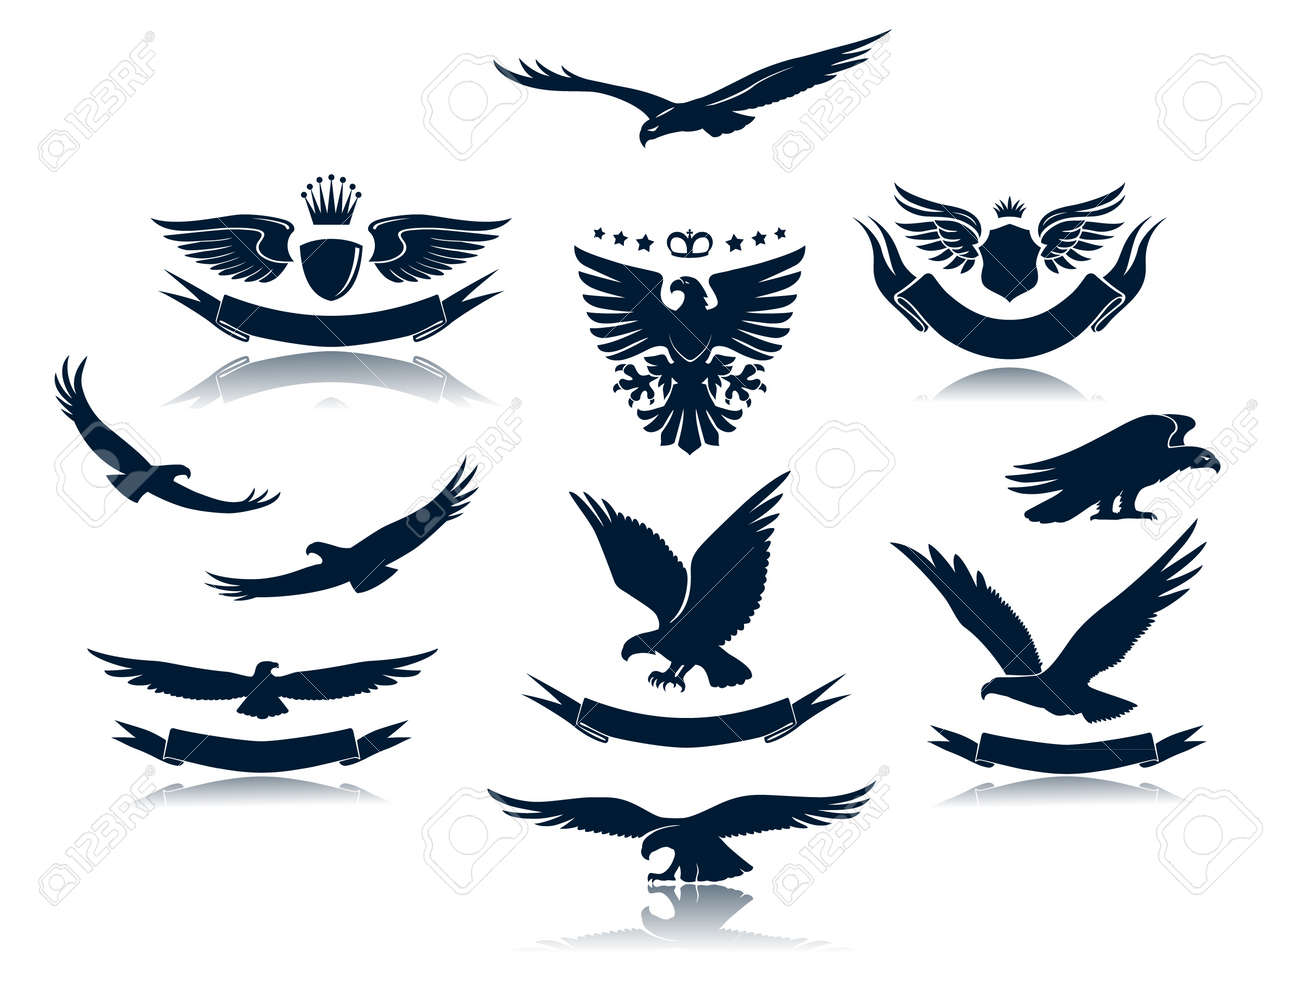 Eagle Silhouettes Set 3 Stock Vector - 14600750